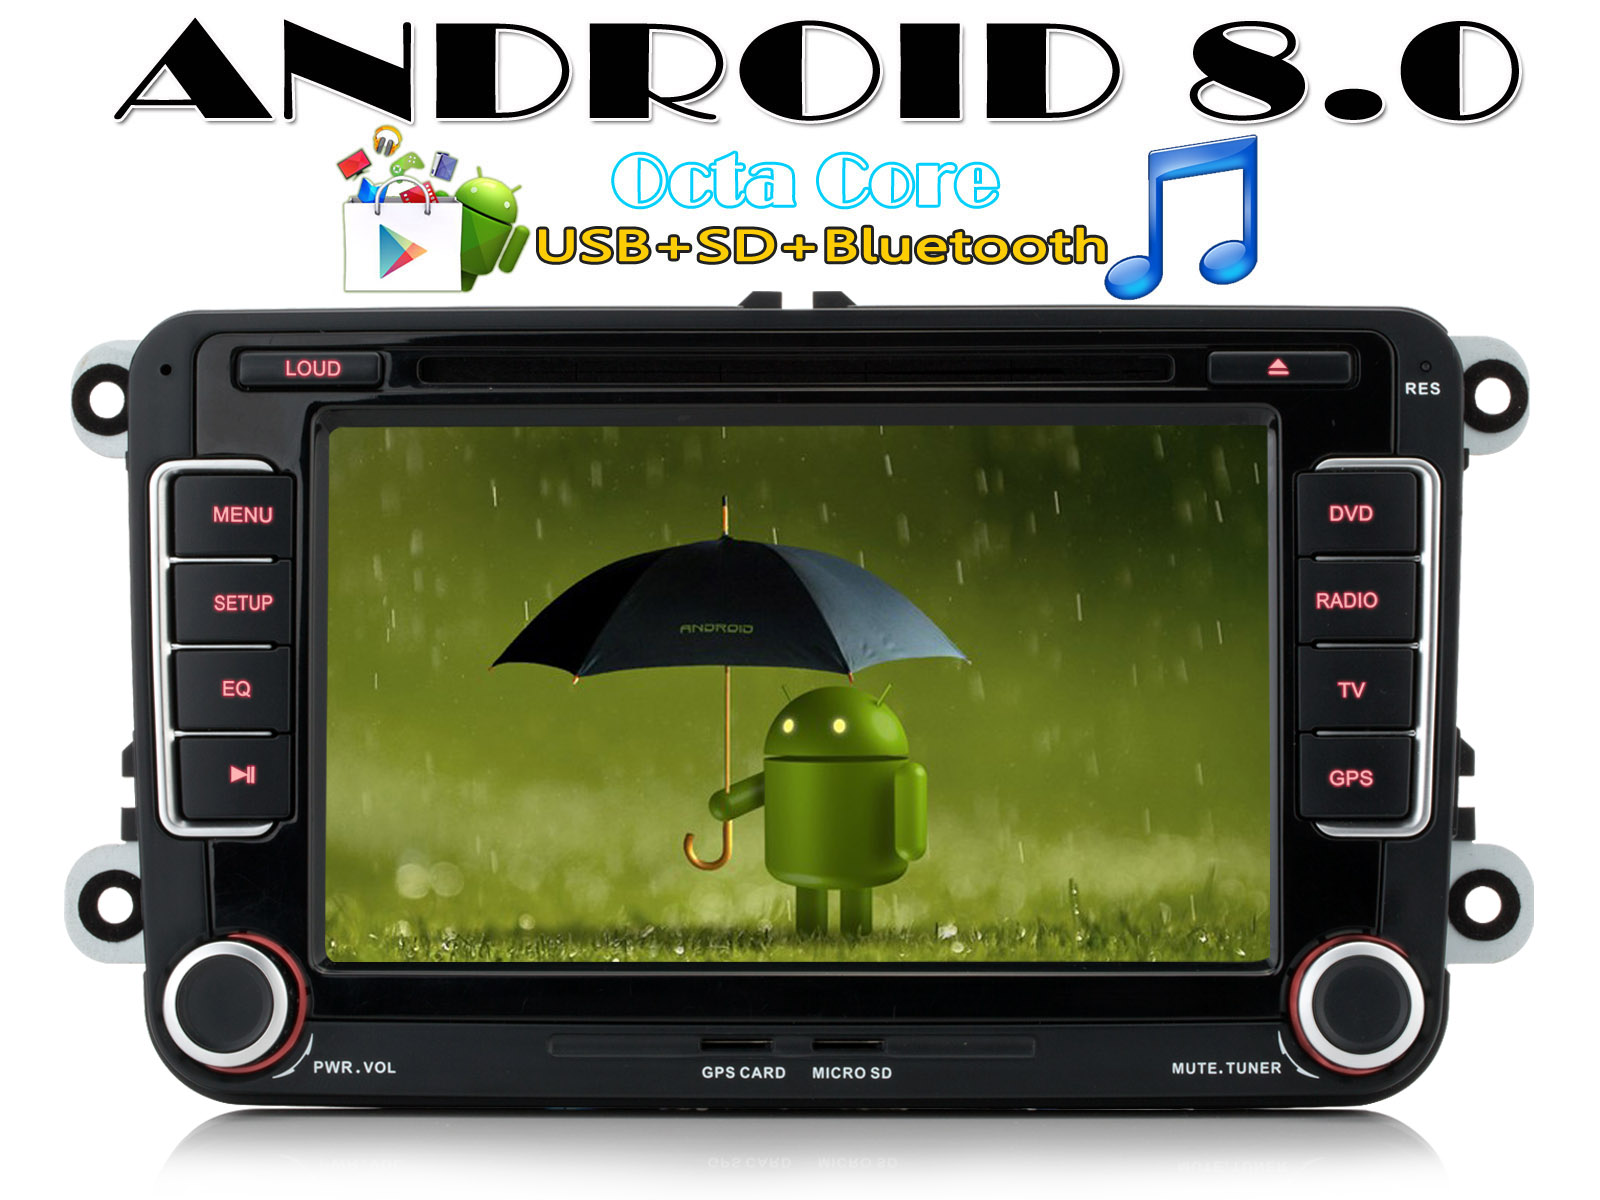 dab autoradio gps android 8 0 32gb rom 7 per vw tiguan. Black Bedroom Furniture Sets. Home Design Ideas